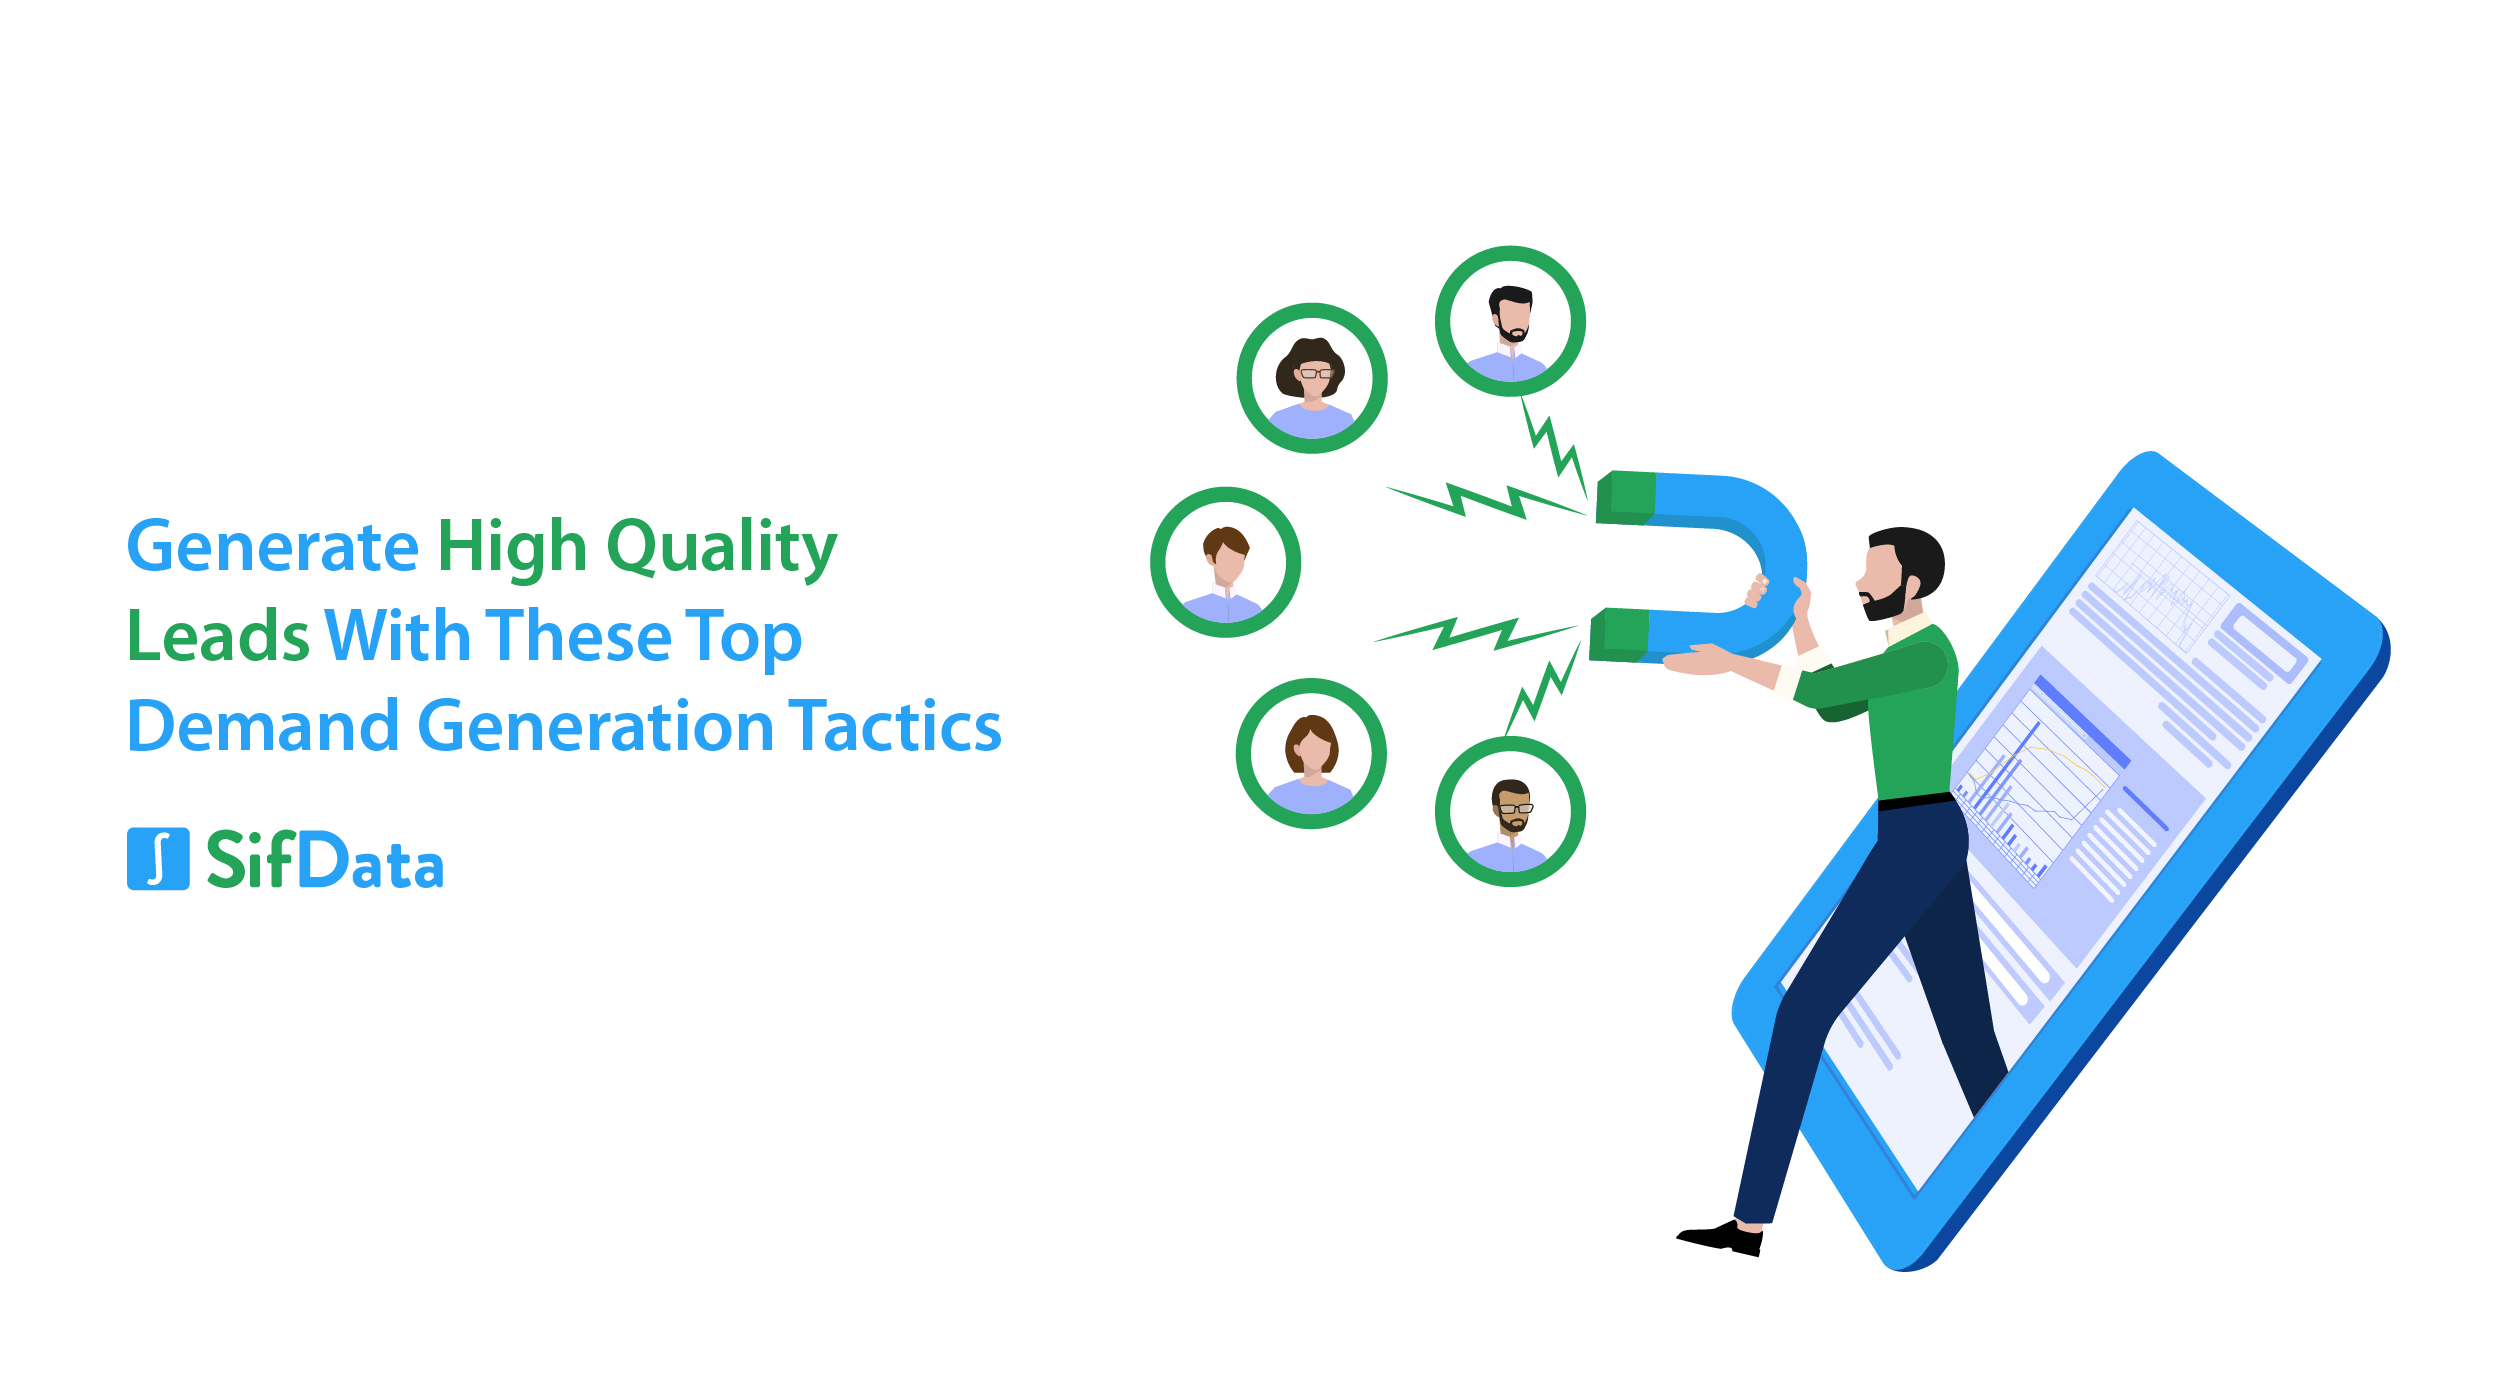 GENERATE HIGH QUALITY LEADS WITH THESE TOP DEMAND GENERATION TACTICS